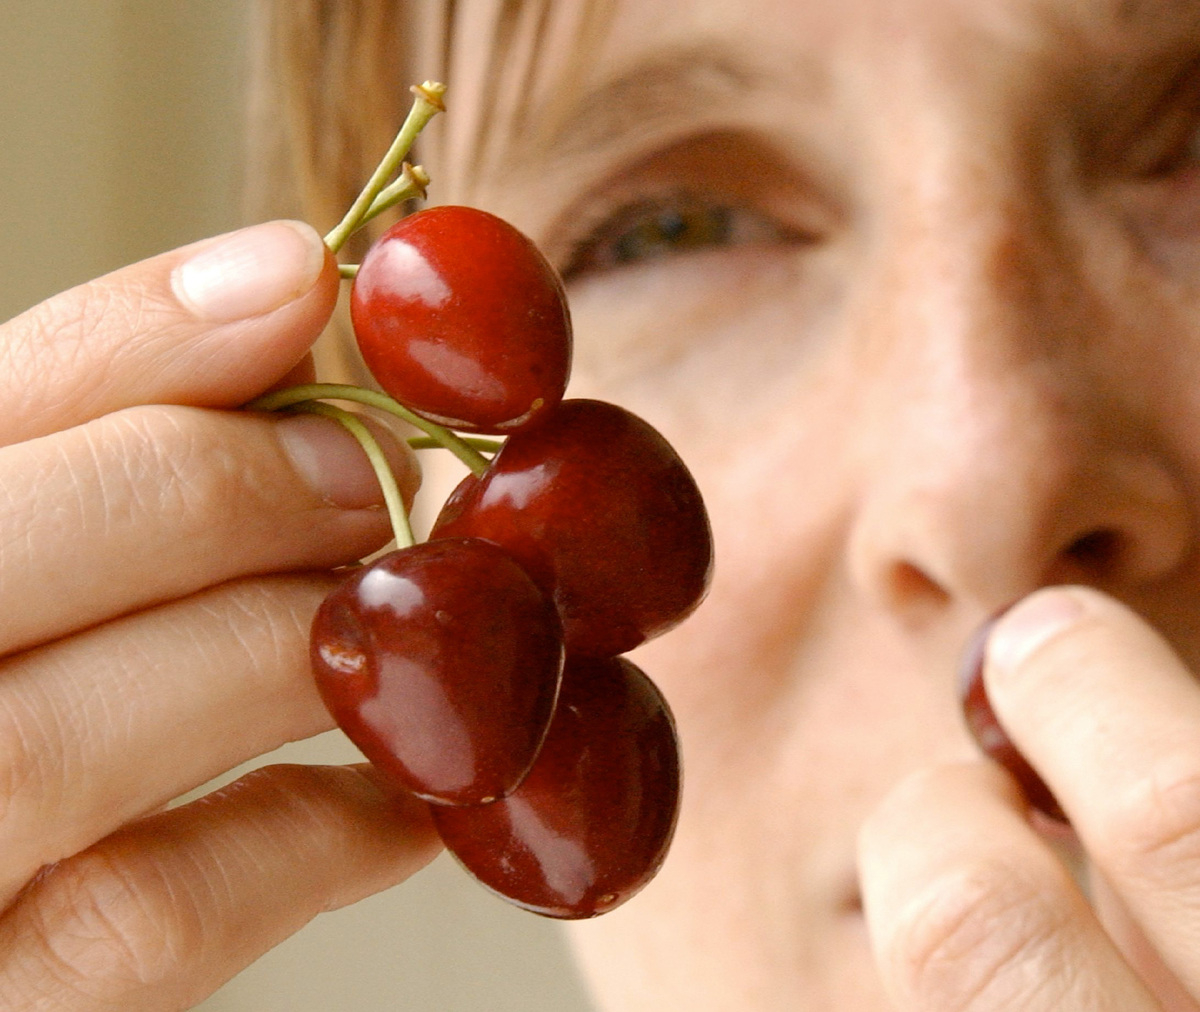 A woman eats cherries in this close-up.